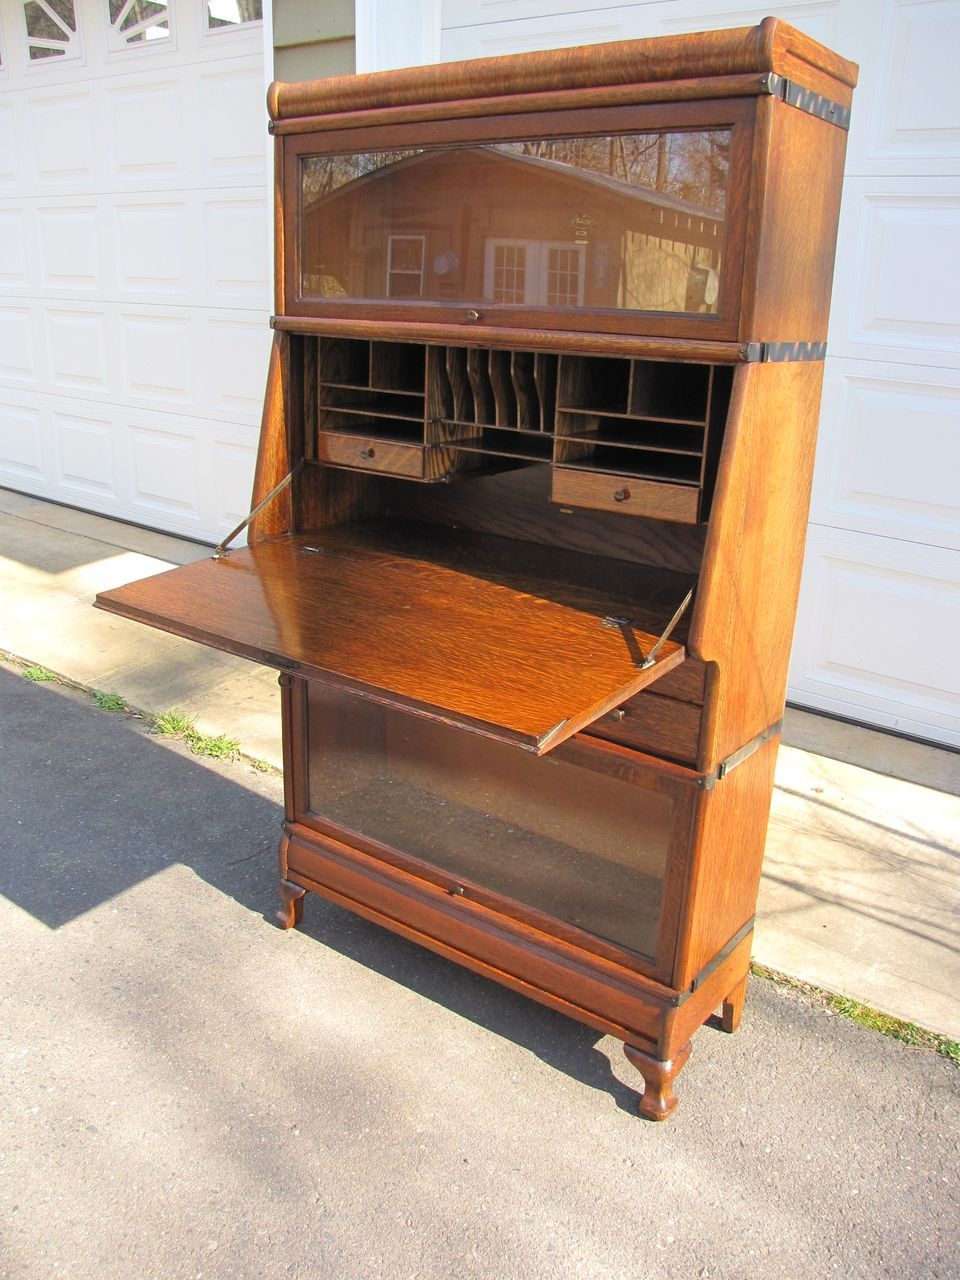 our barrister desk oak barrister bookcase for sale at now and then antique mall